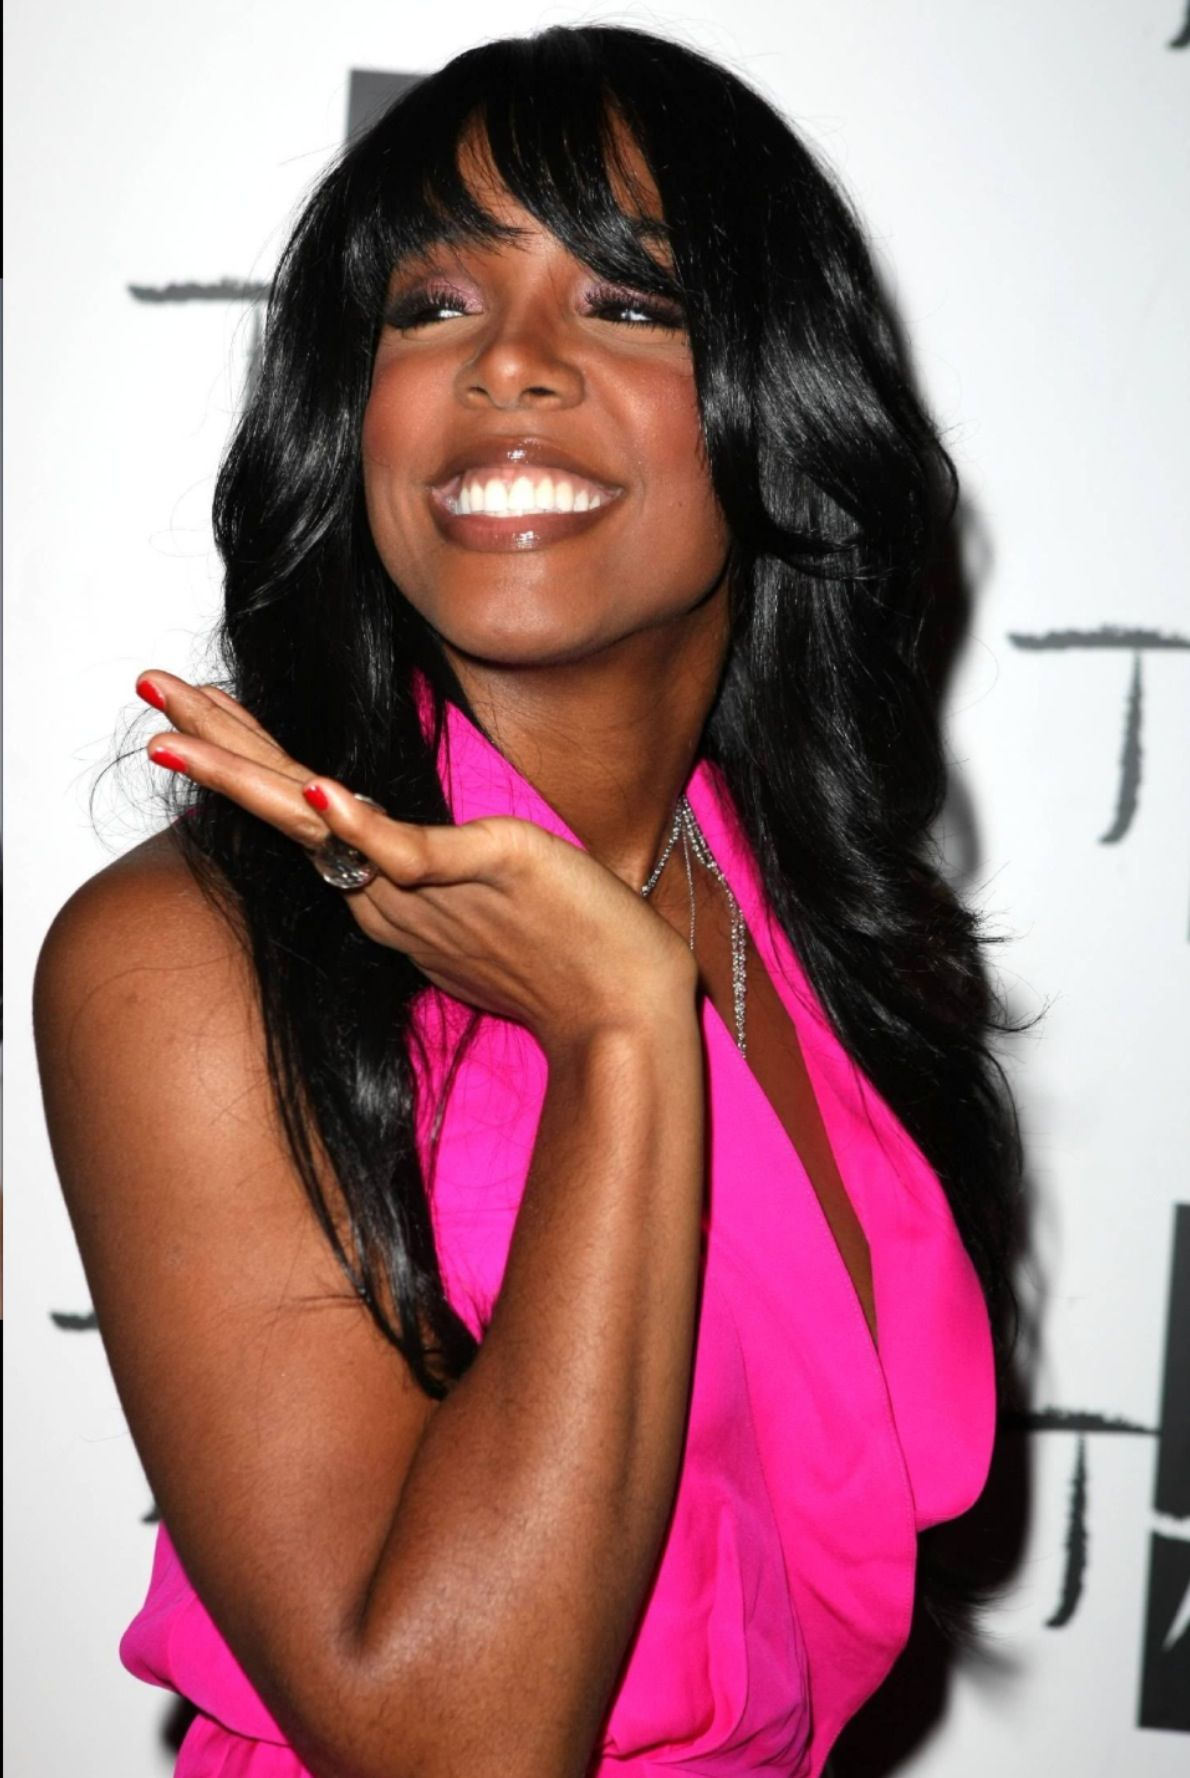 Her Pink top with red nail polish | KELLY ROWLAND | Pinterest | Red ...